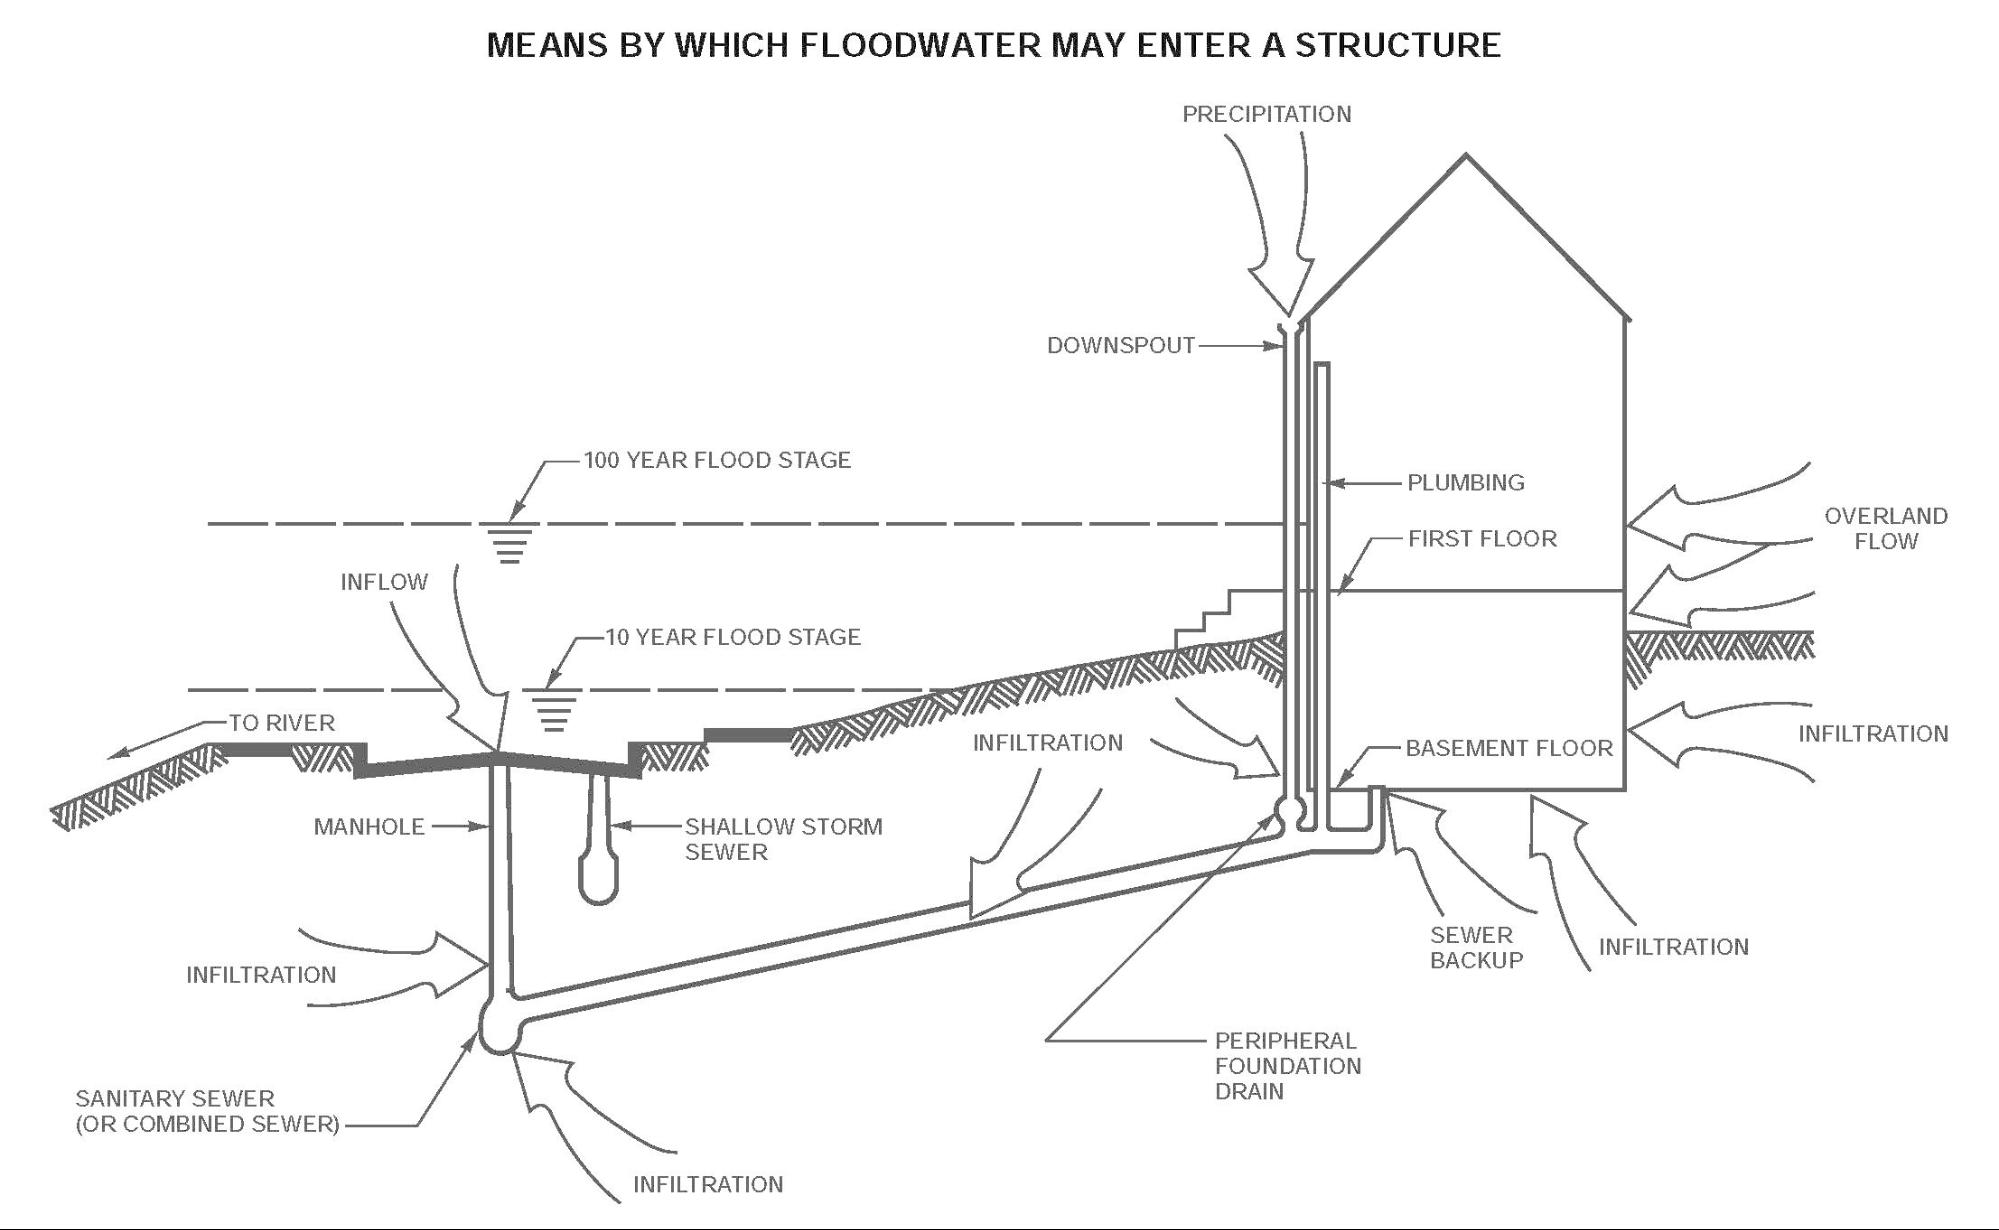 Drawing from SEWRPC (2010) illustrating the many means by which floodwaters can enter homes, including overflow of rivers, overland flow, infiltration from elevated groundwater levels, and sewer backups.